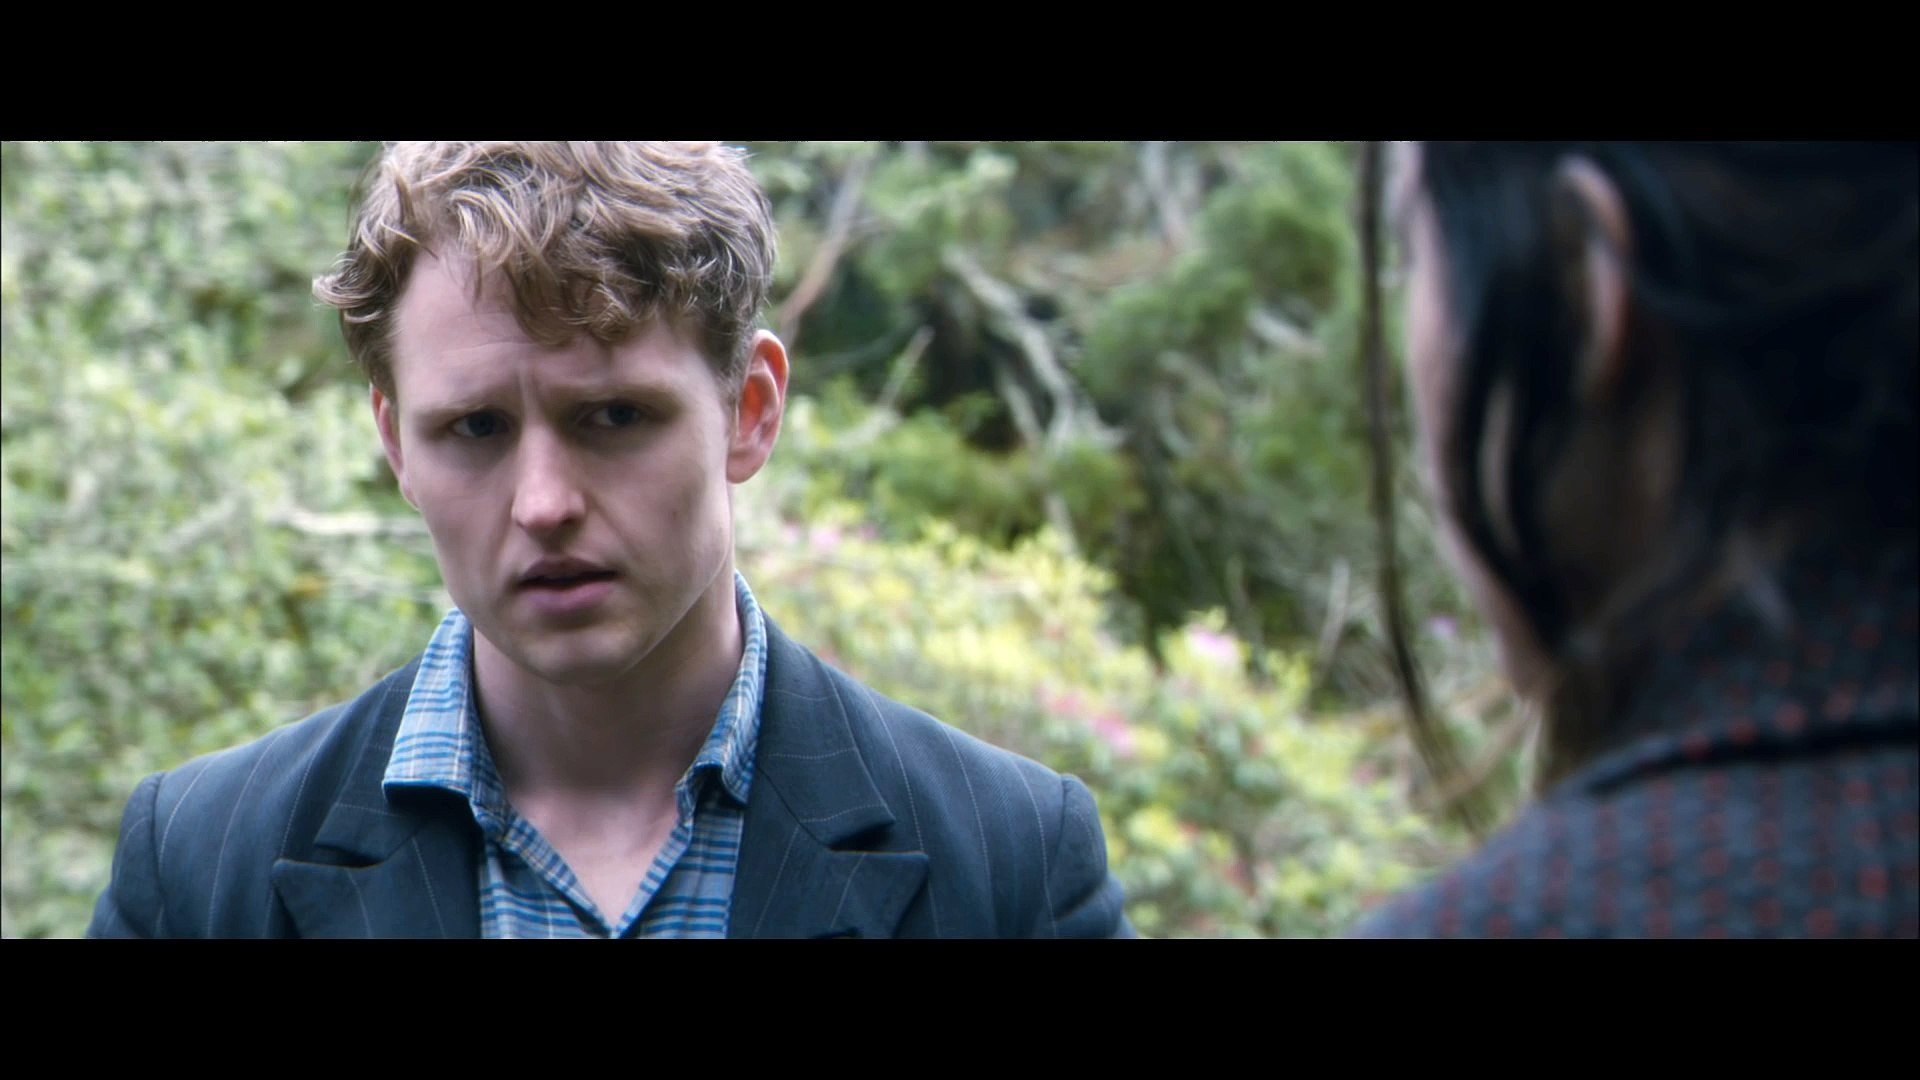 The Silent Storm (2016) English Movie Official Theatrical Trailer[HD] - Damian Lewis, Andrea Risebor